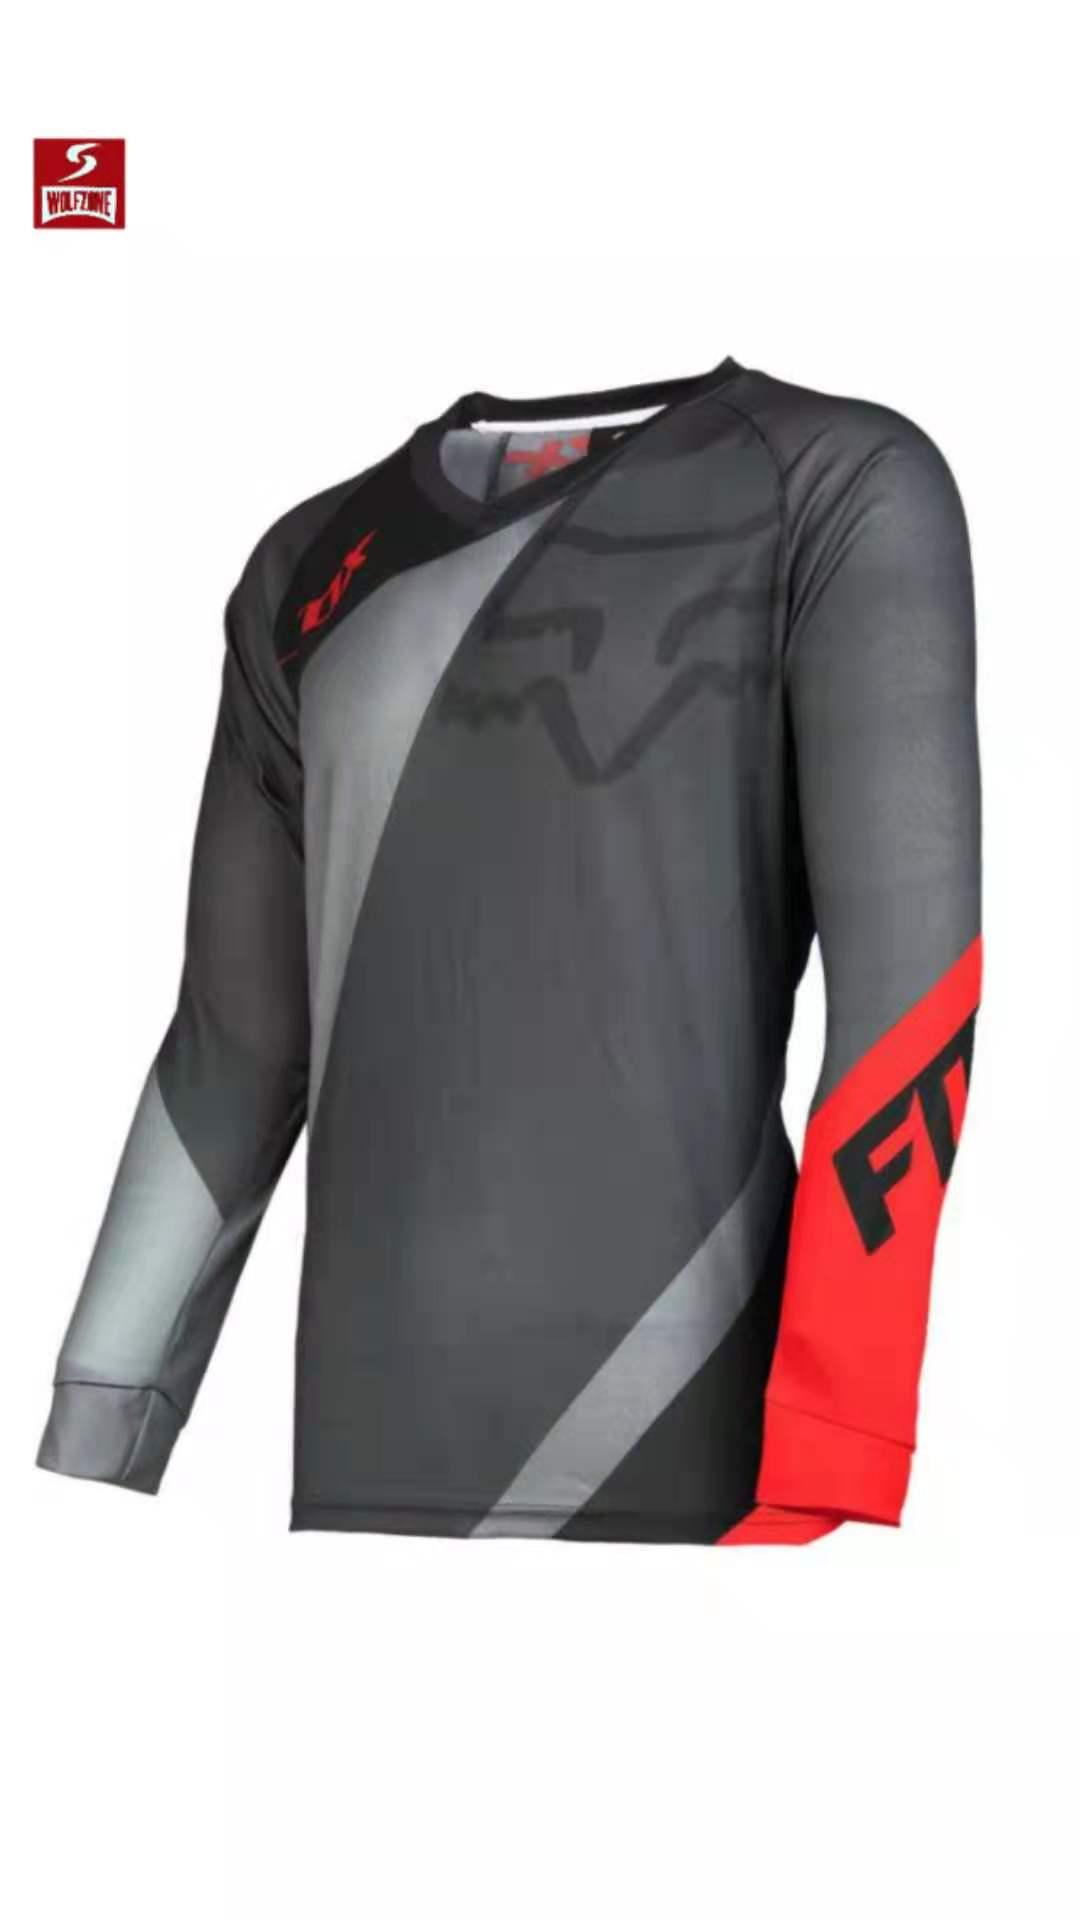 d491bc0ae Bike Jerseys for Men for sale - Cycling Jersey for Men Online Deals &  Prices in Philippines   Lazada.com.ph